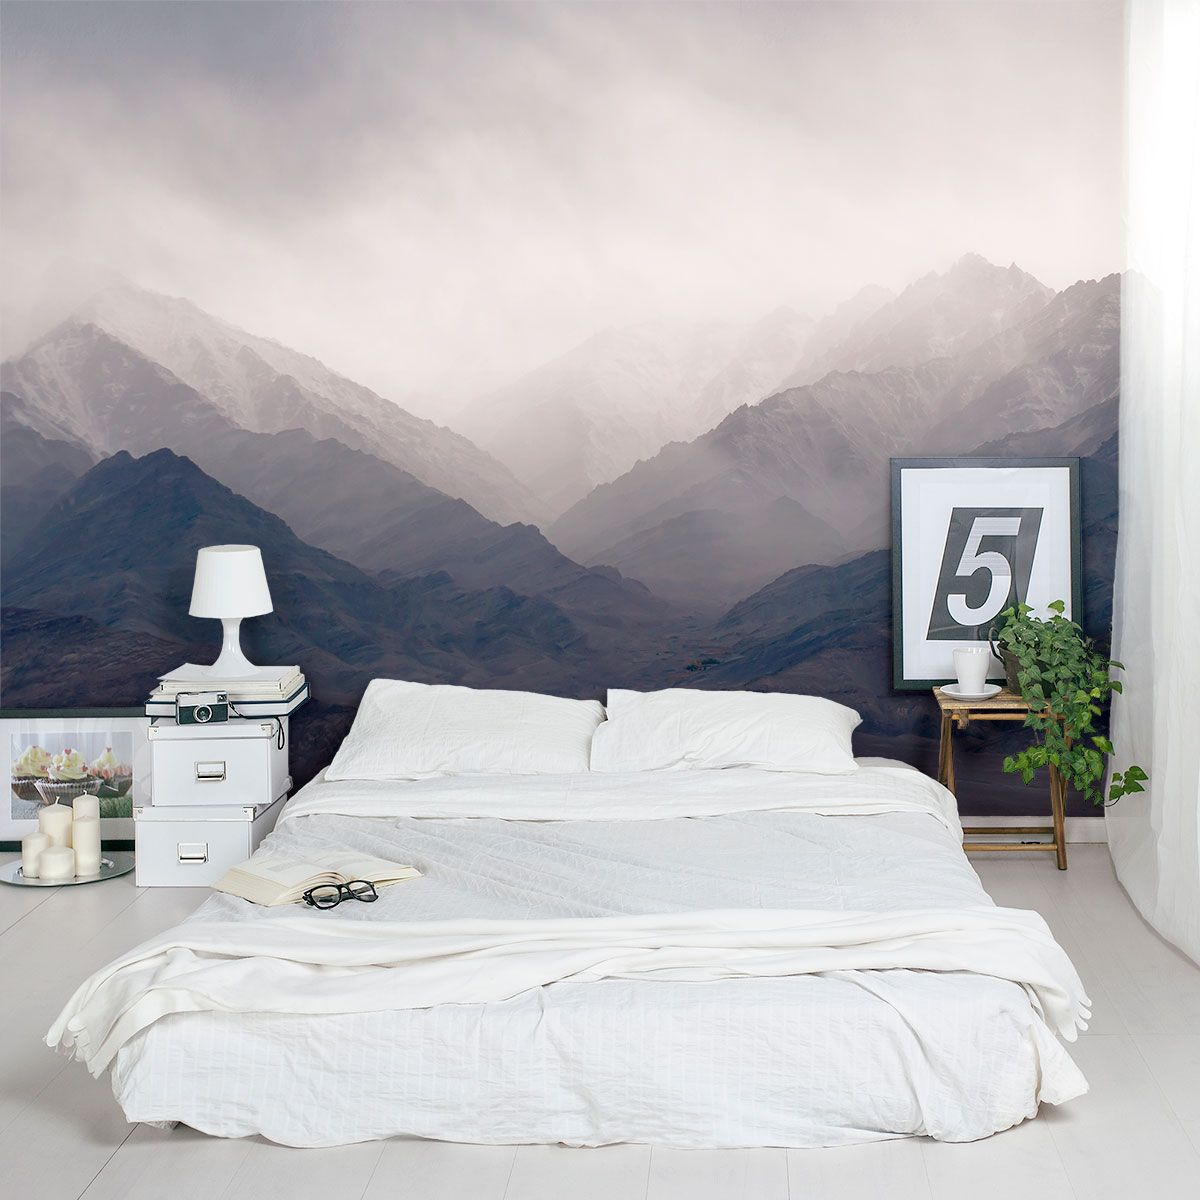 Top Wallpaper Mountain Bedroom - 08f0715b4c7060359321c9b161b60753  Collection_6438.jpg